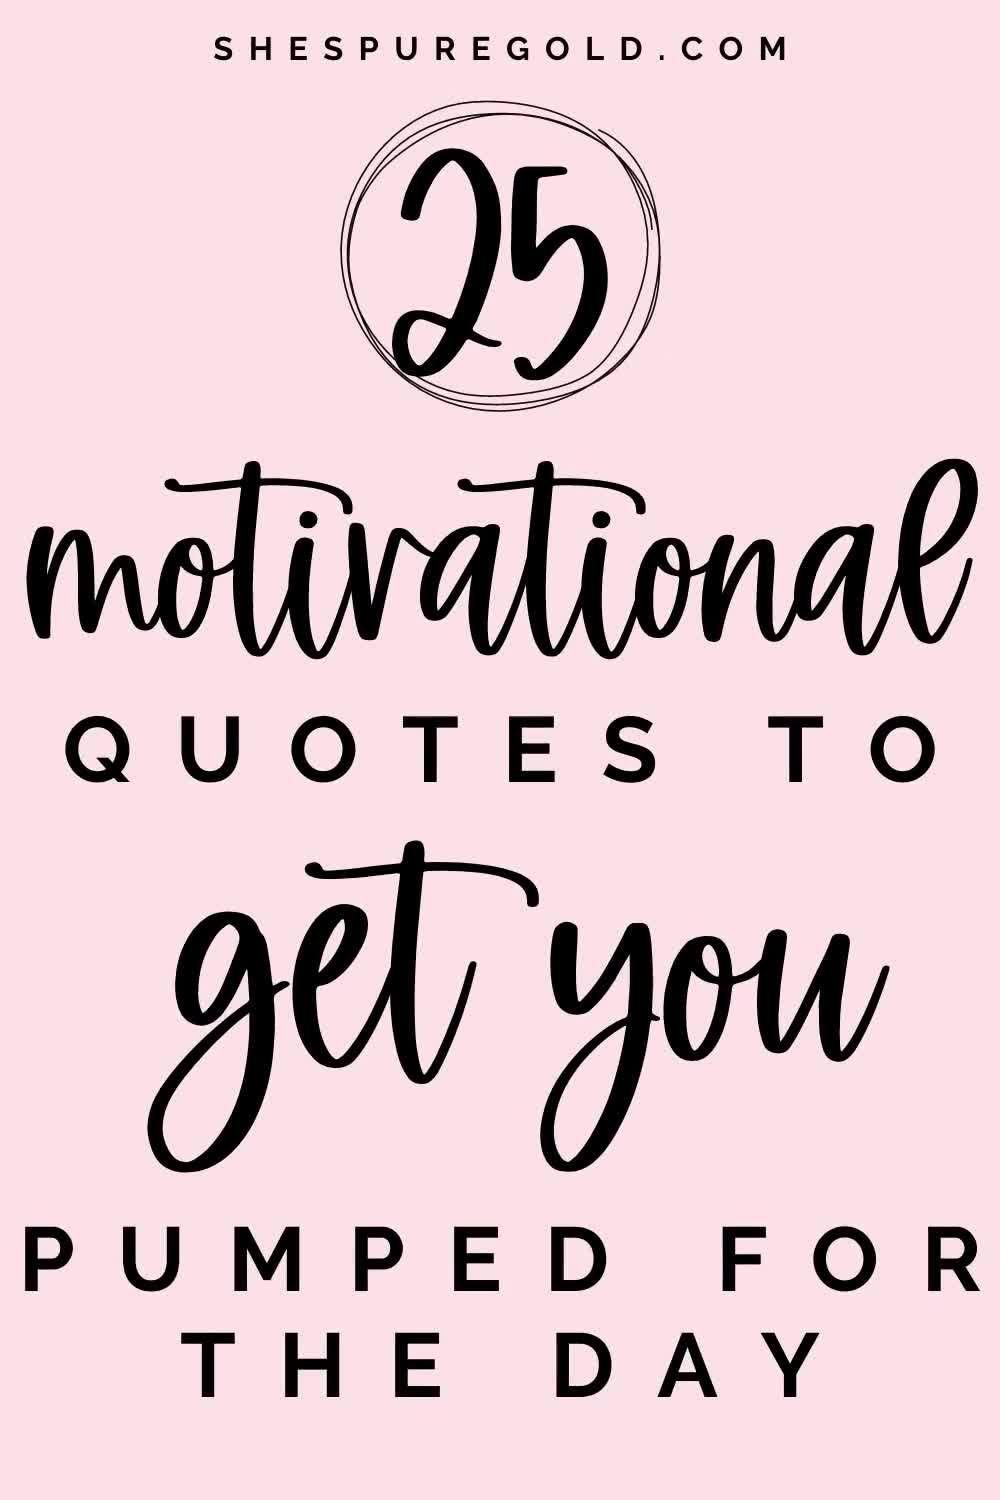 25 Motivational Quotes for positive and good vibes